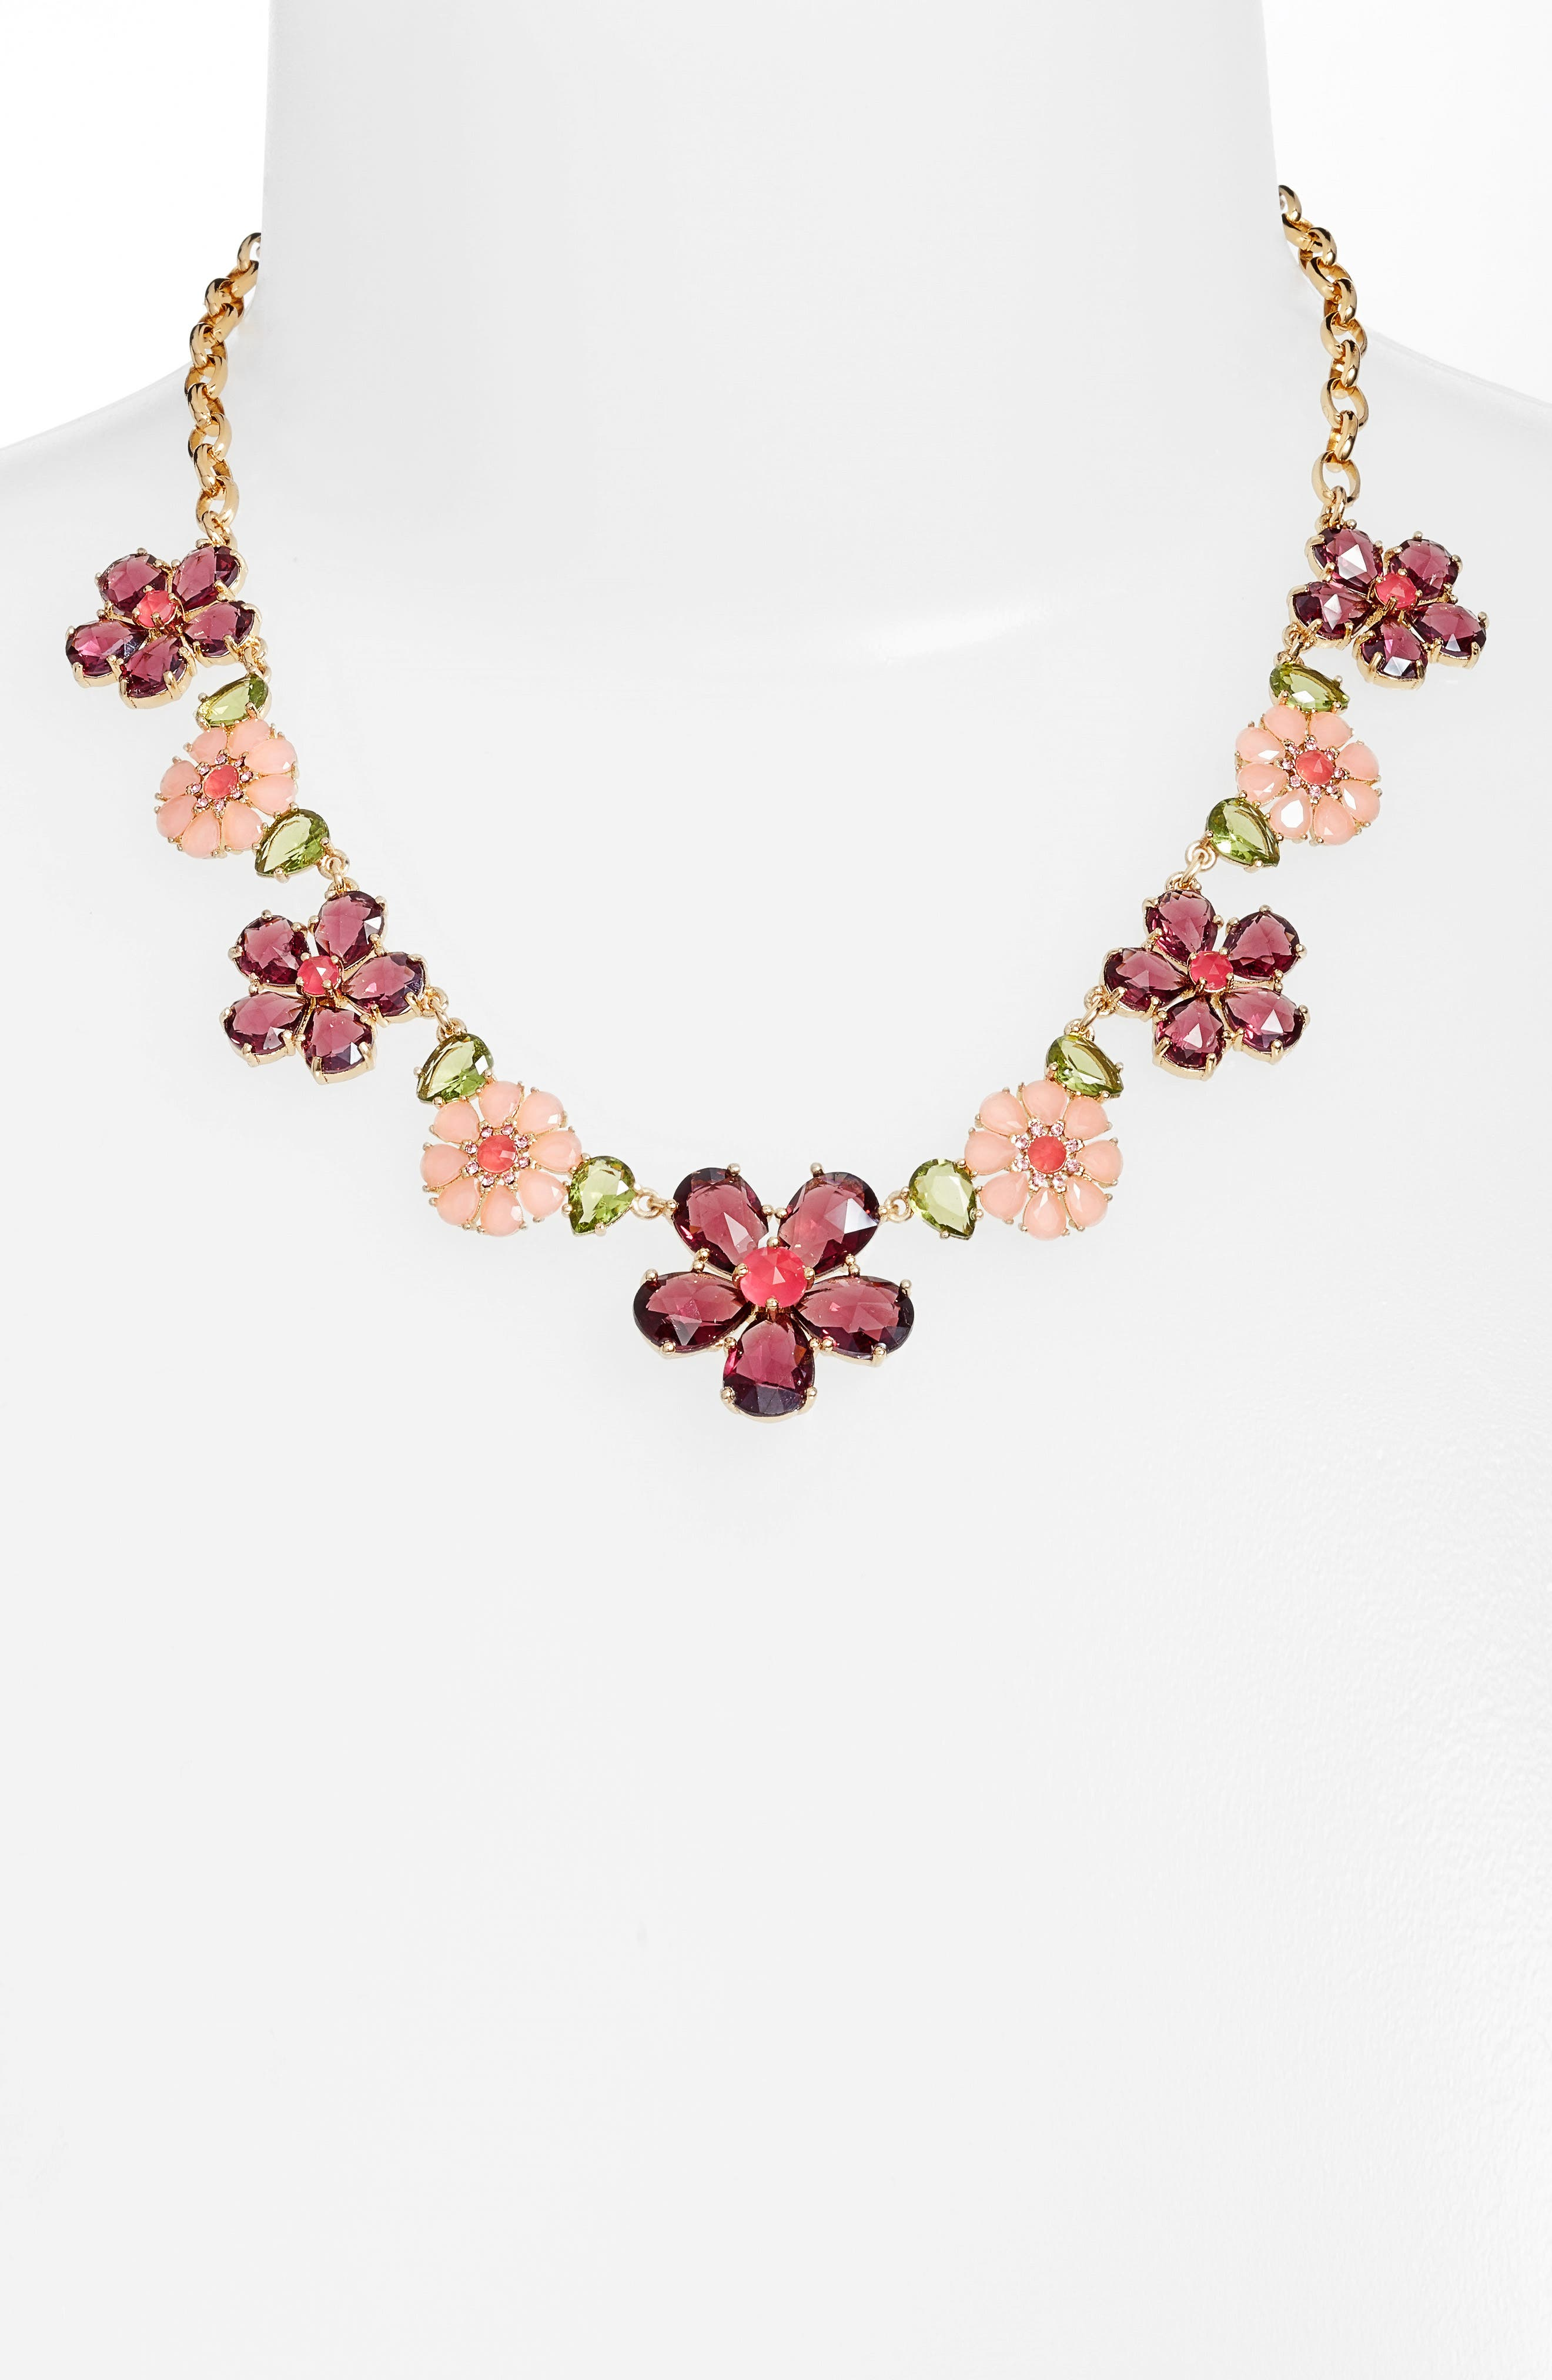 kate spade new york in full bloom collar necklace